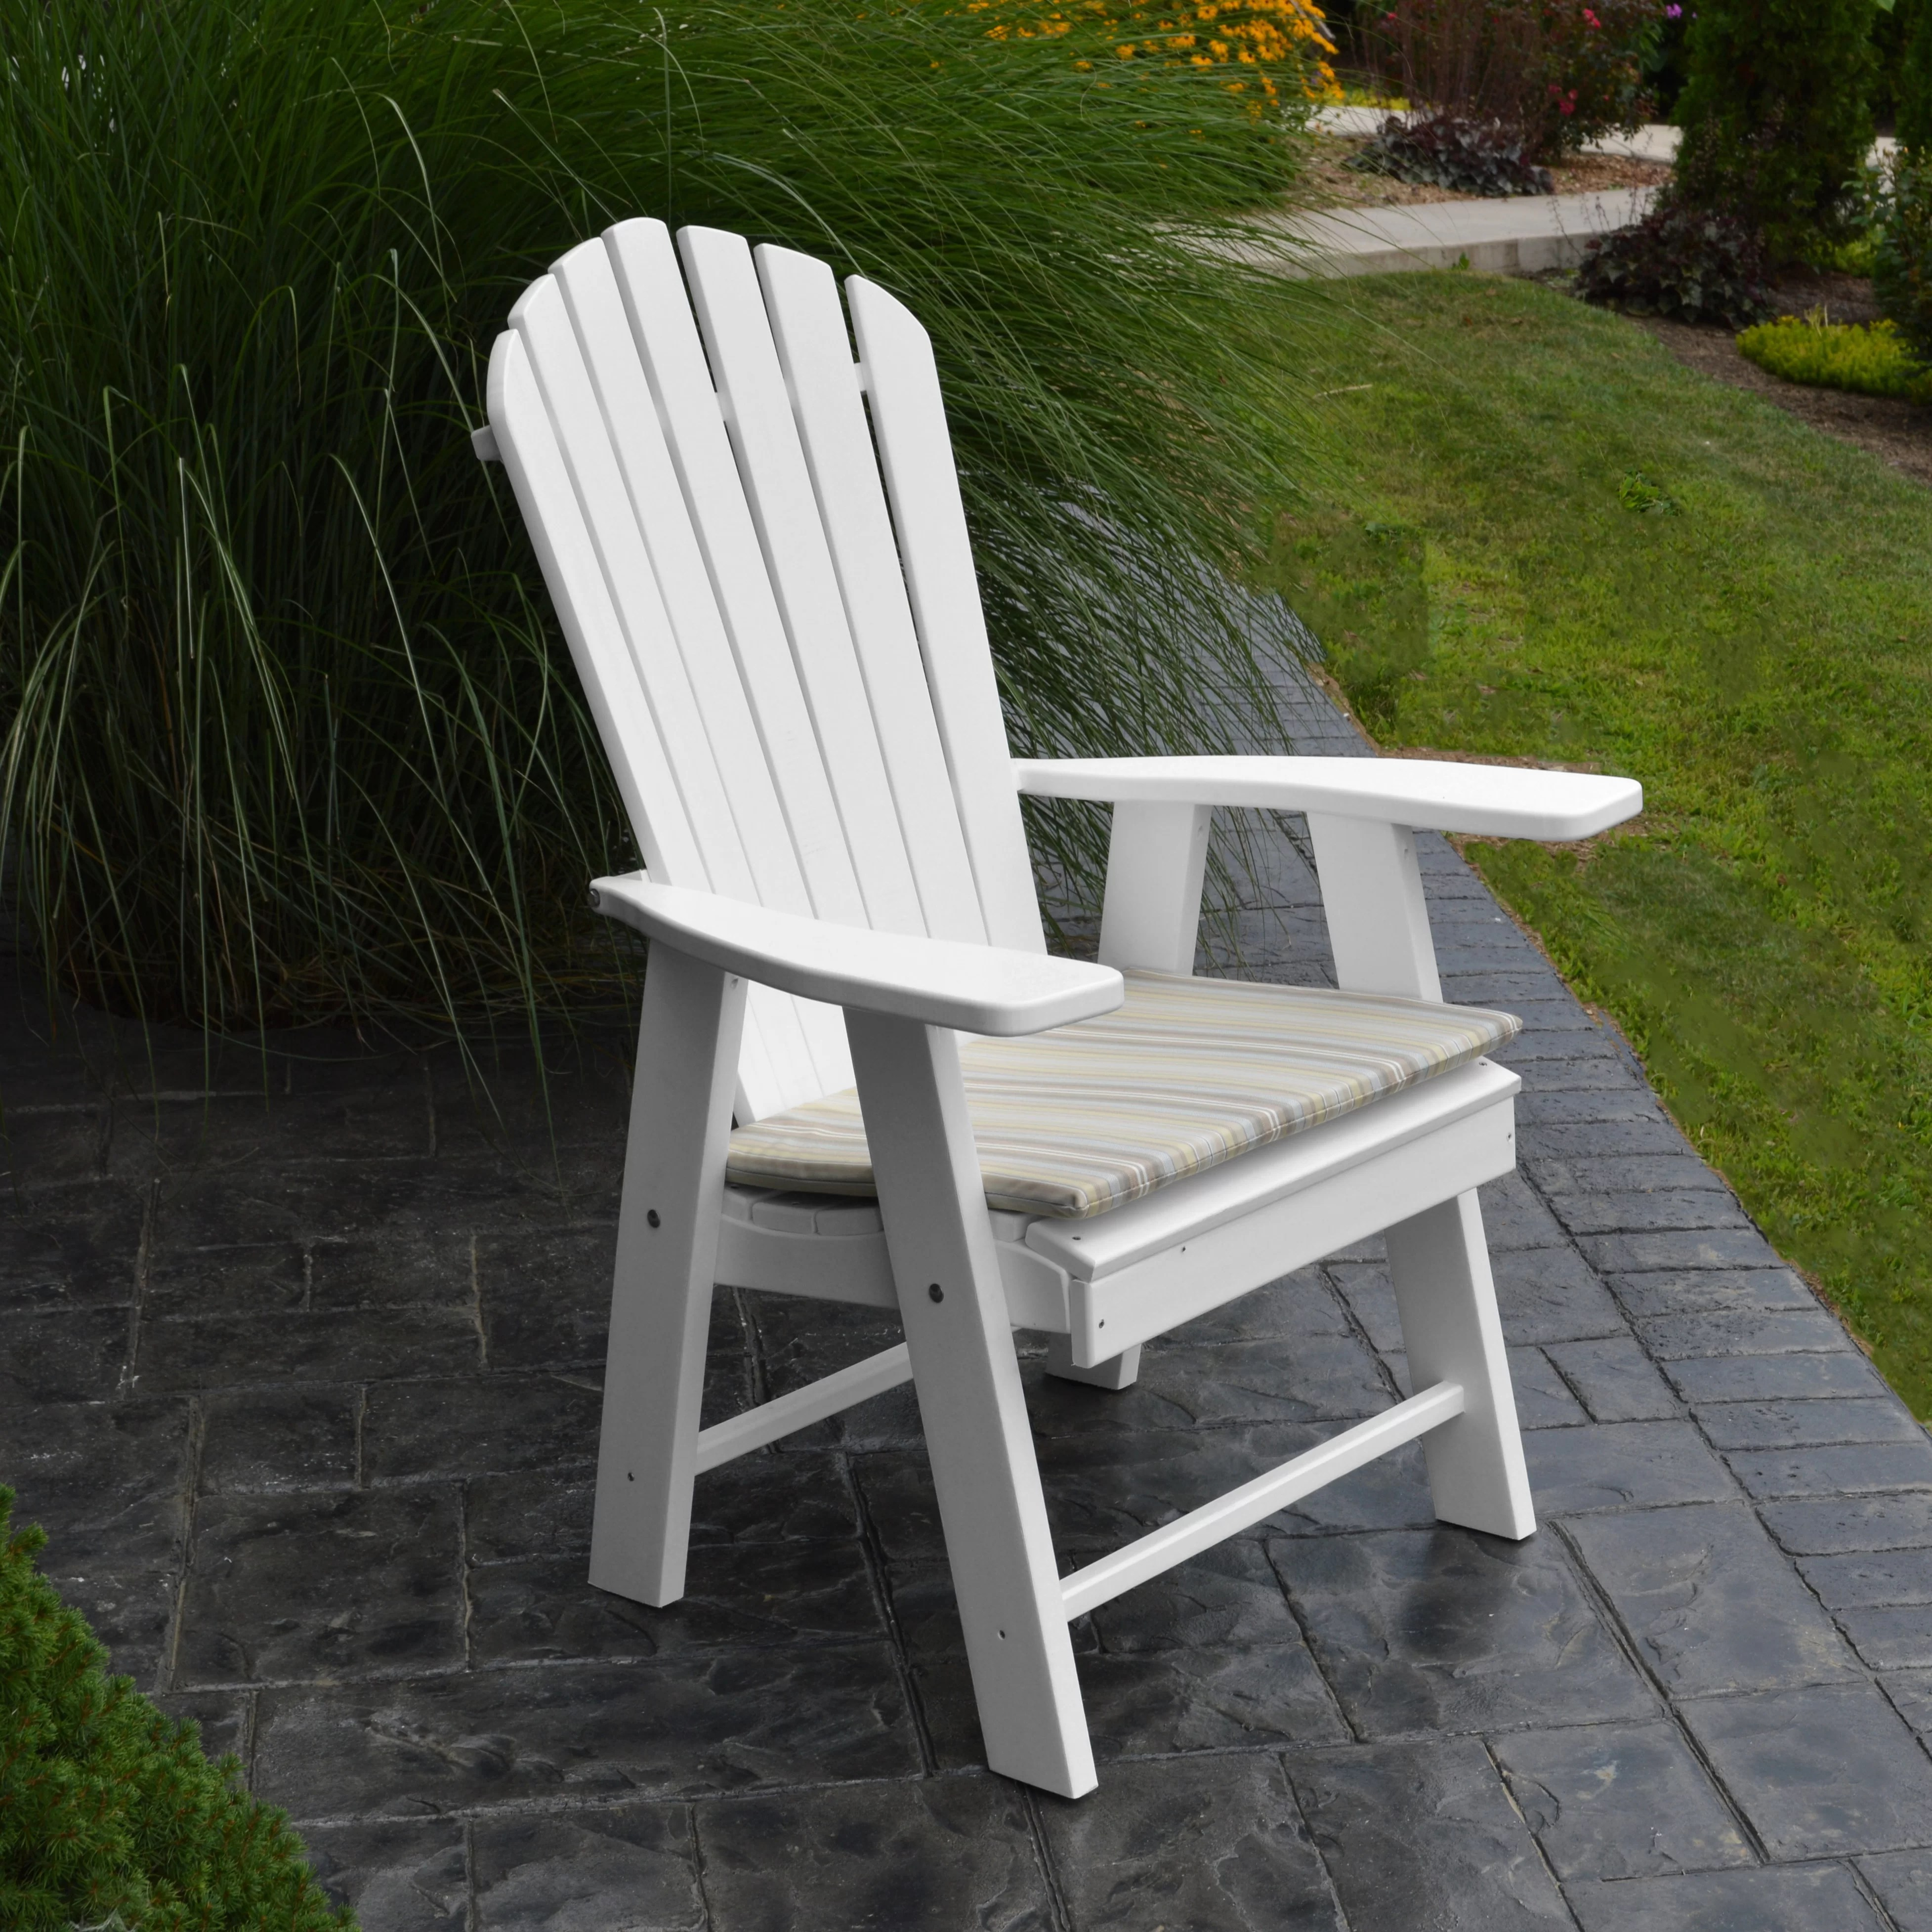 wayfair adirondack chairs commode chair over toilet a andl furniture upright and reviews